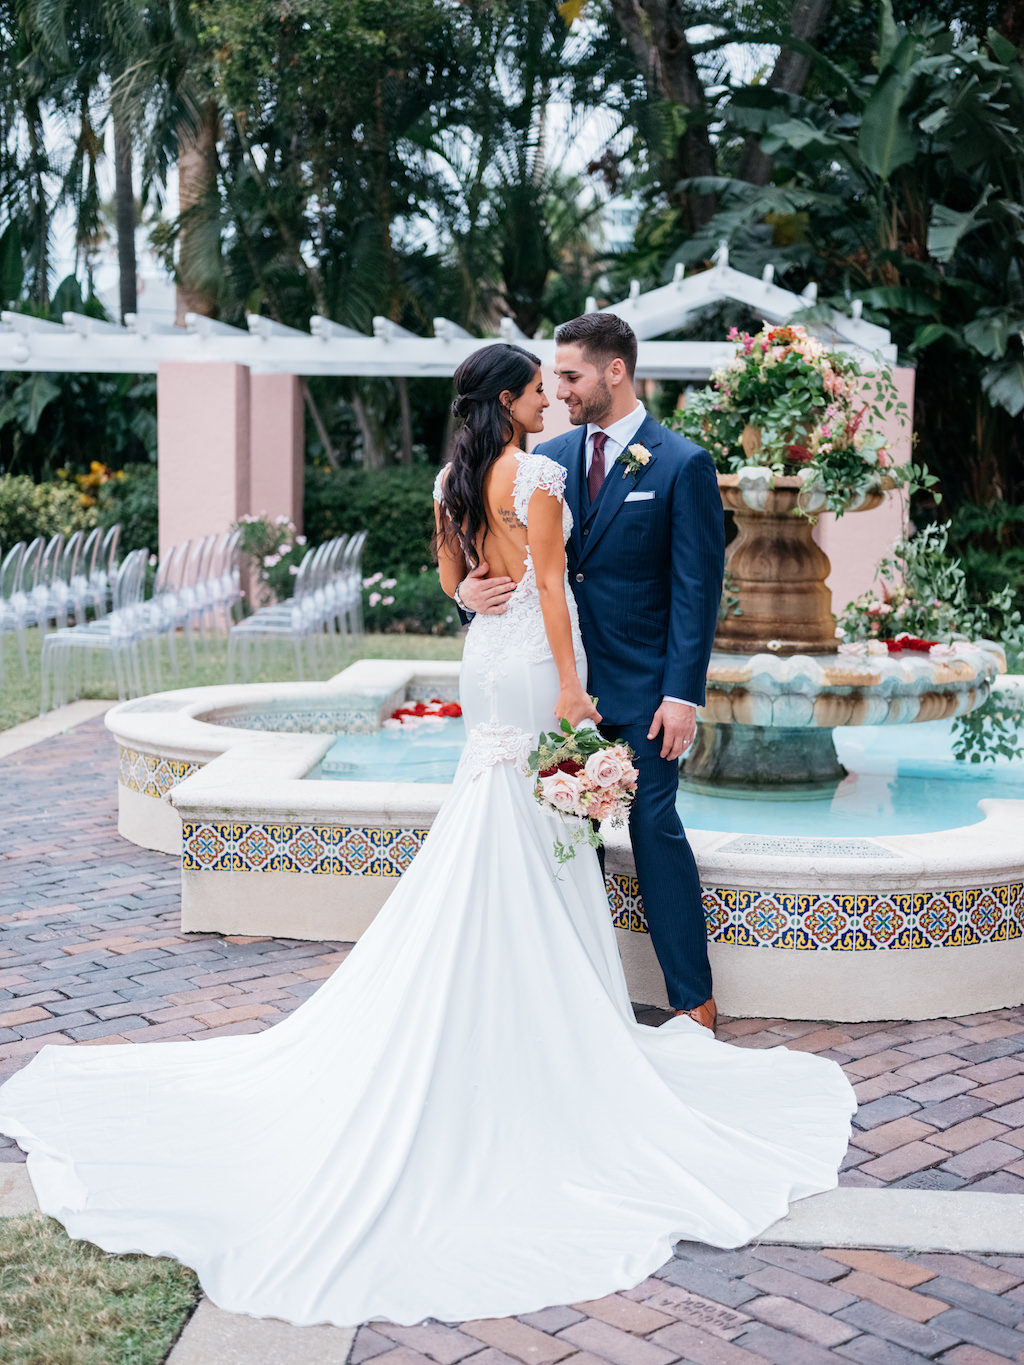 Romantic Bride and Groom, Professional Tampa Bay Rays Baseball Player Kevin Keirmaier, Hotel Courtyard Wedding Portrait, Bride in Low Back Fitted Lace and Illusion Cap Sleeve Pnina Tornai Wedding Dress | Tampa Bay Wedding Planner Parties A'la Carte | St. Petersburg Hotel Wedding Venue The Vinoy Renaissance